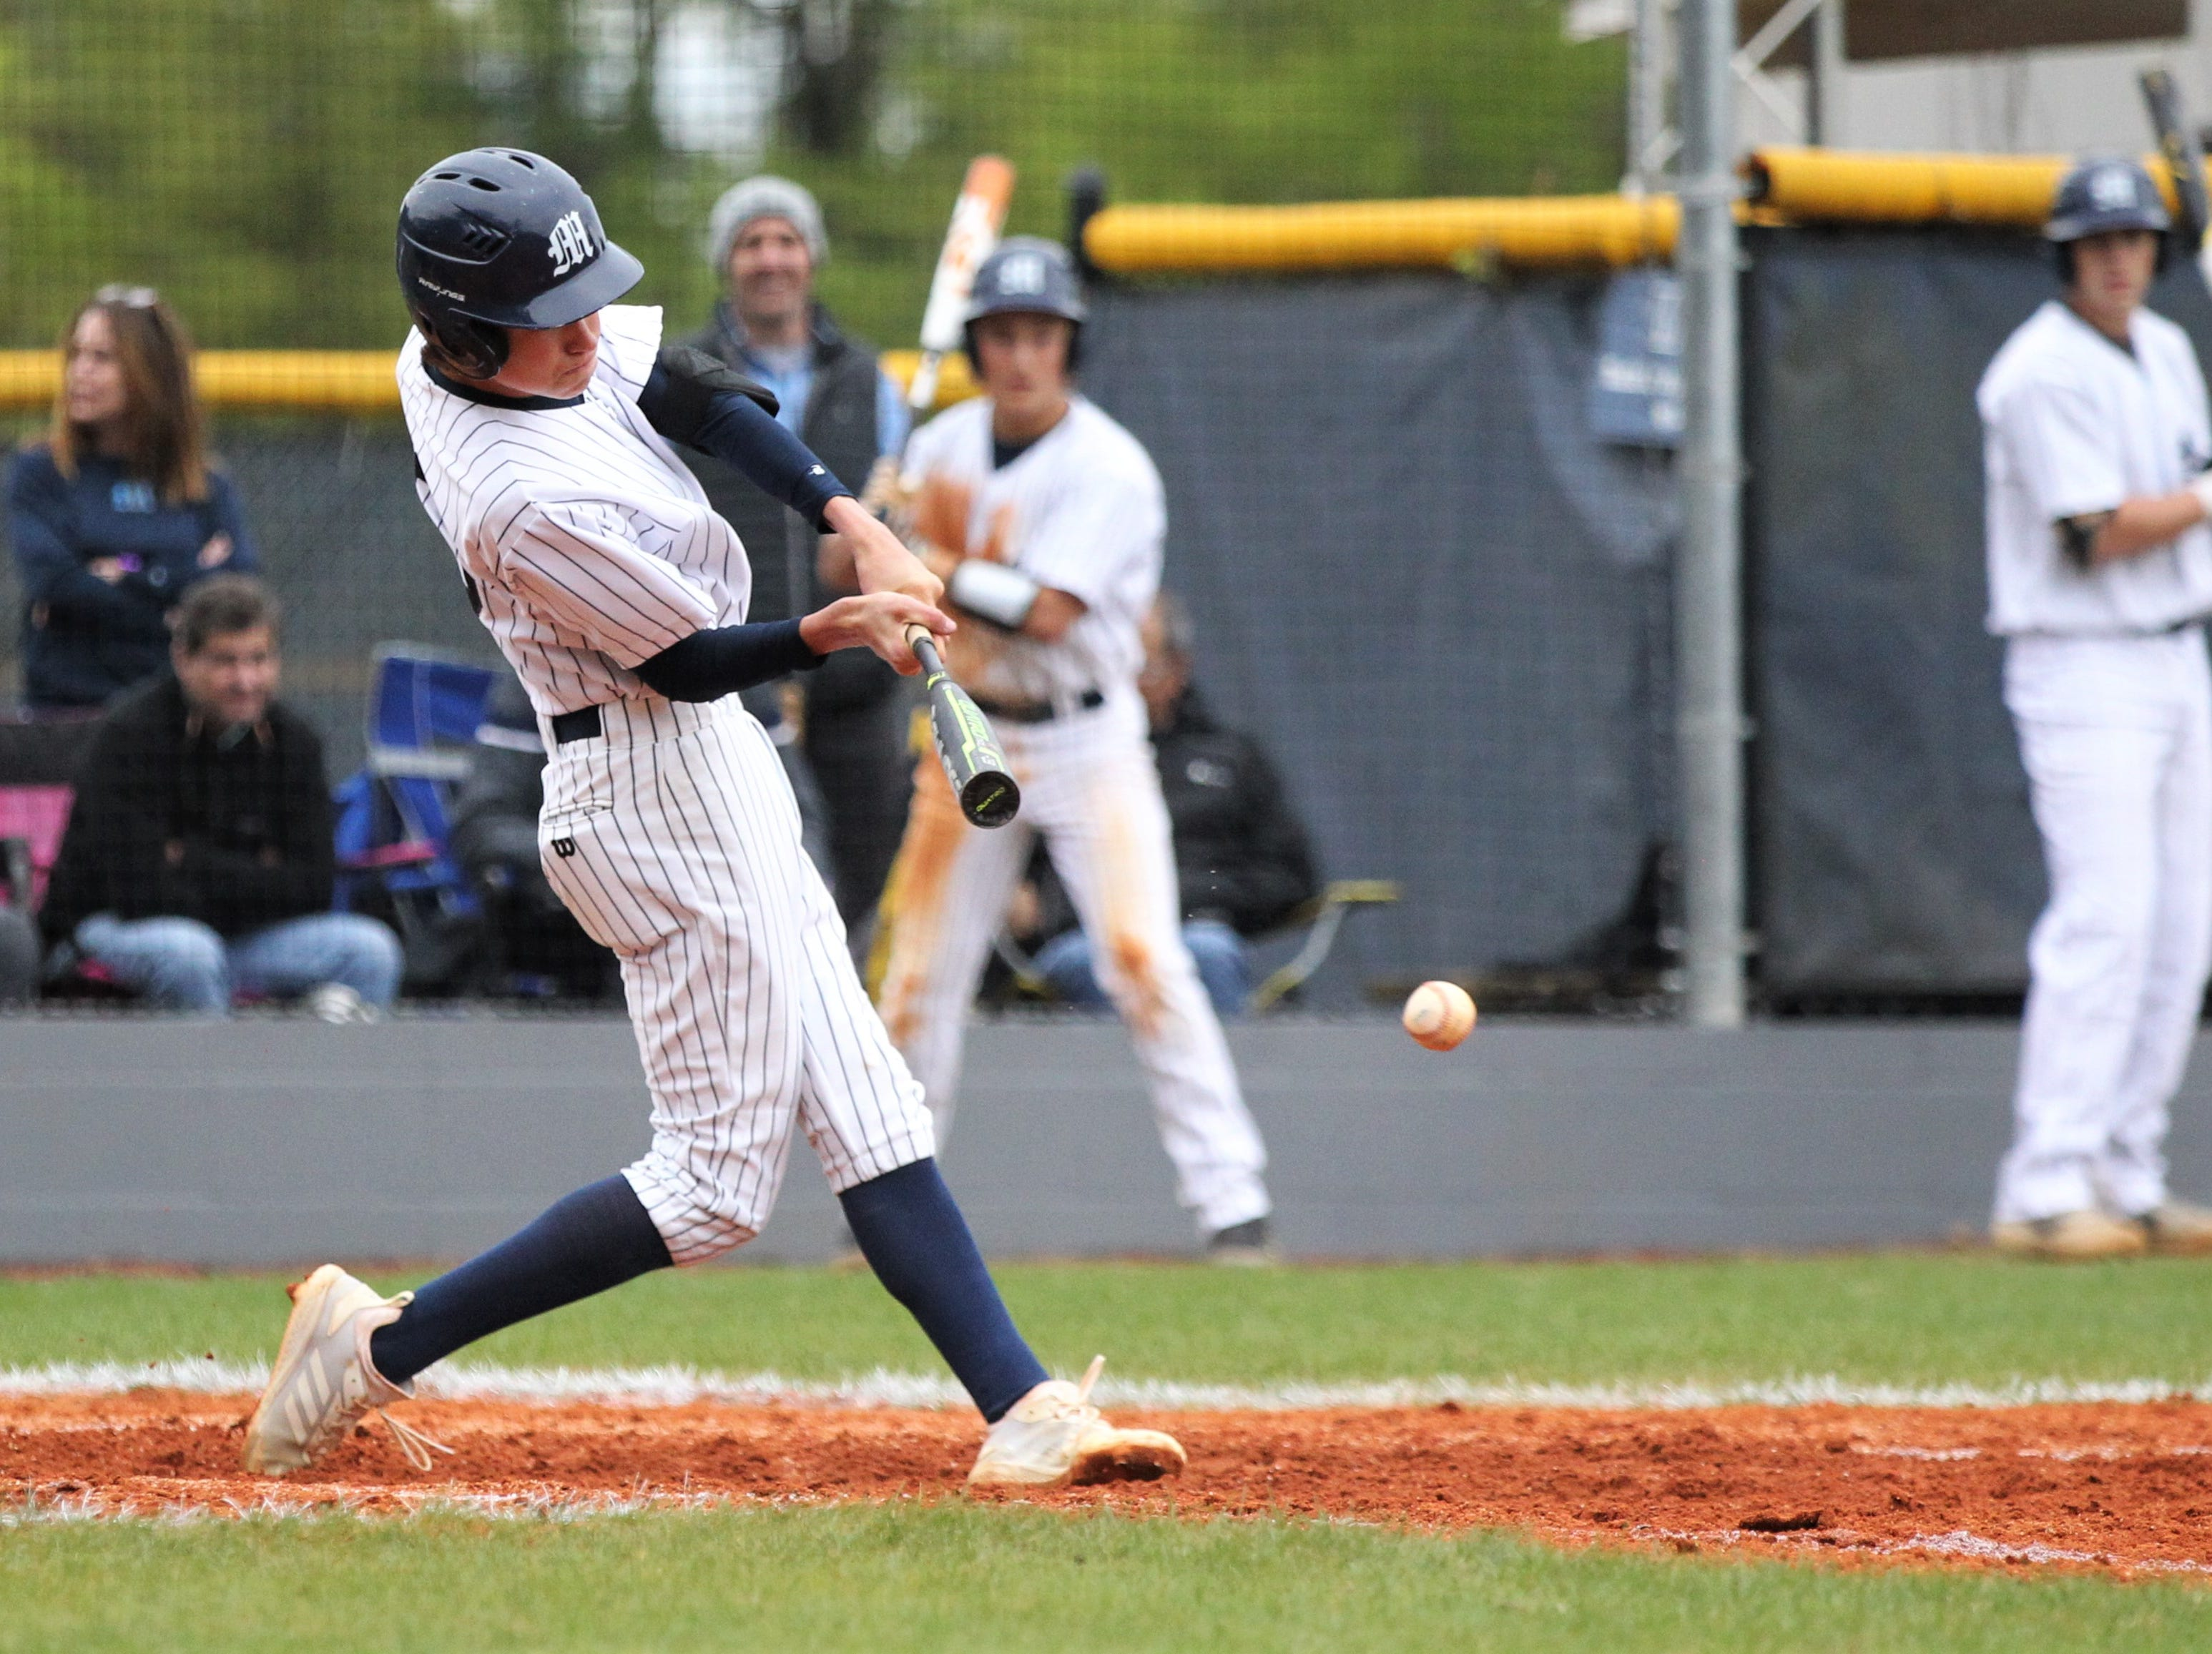 Maclay's Josh Tudor bats as Liberty County's baseball team went on the road to beat Maclay 8-2 on Saturday, March 16, 2019. The Bulldogs played their first game following their head coach Corey Crum's tragic death six days ago.